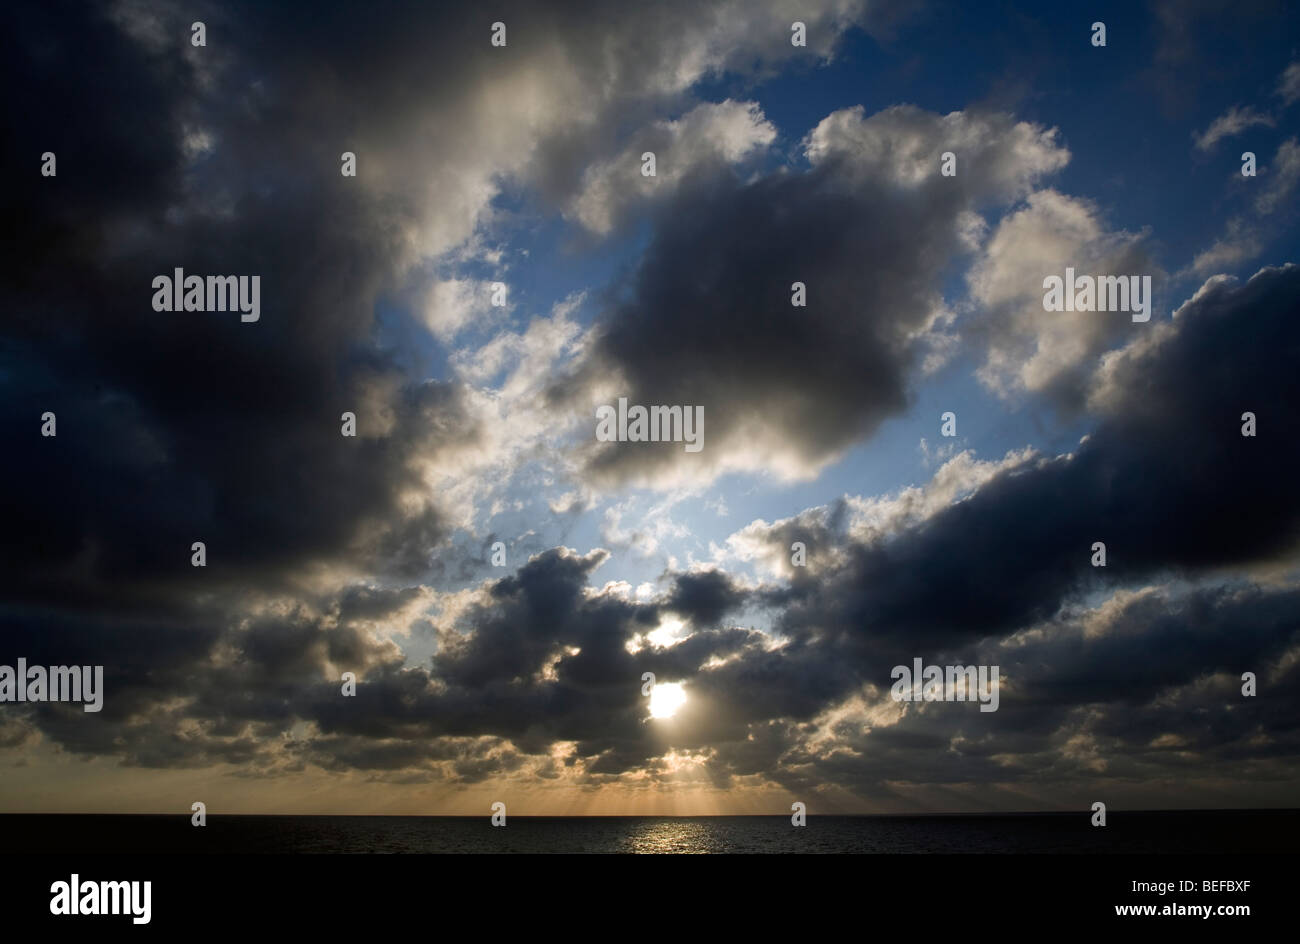 Cloudy early morning sky over the sea - Stock Image